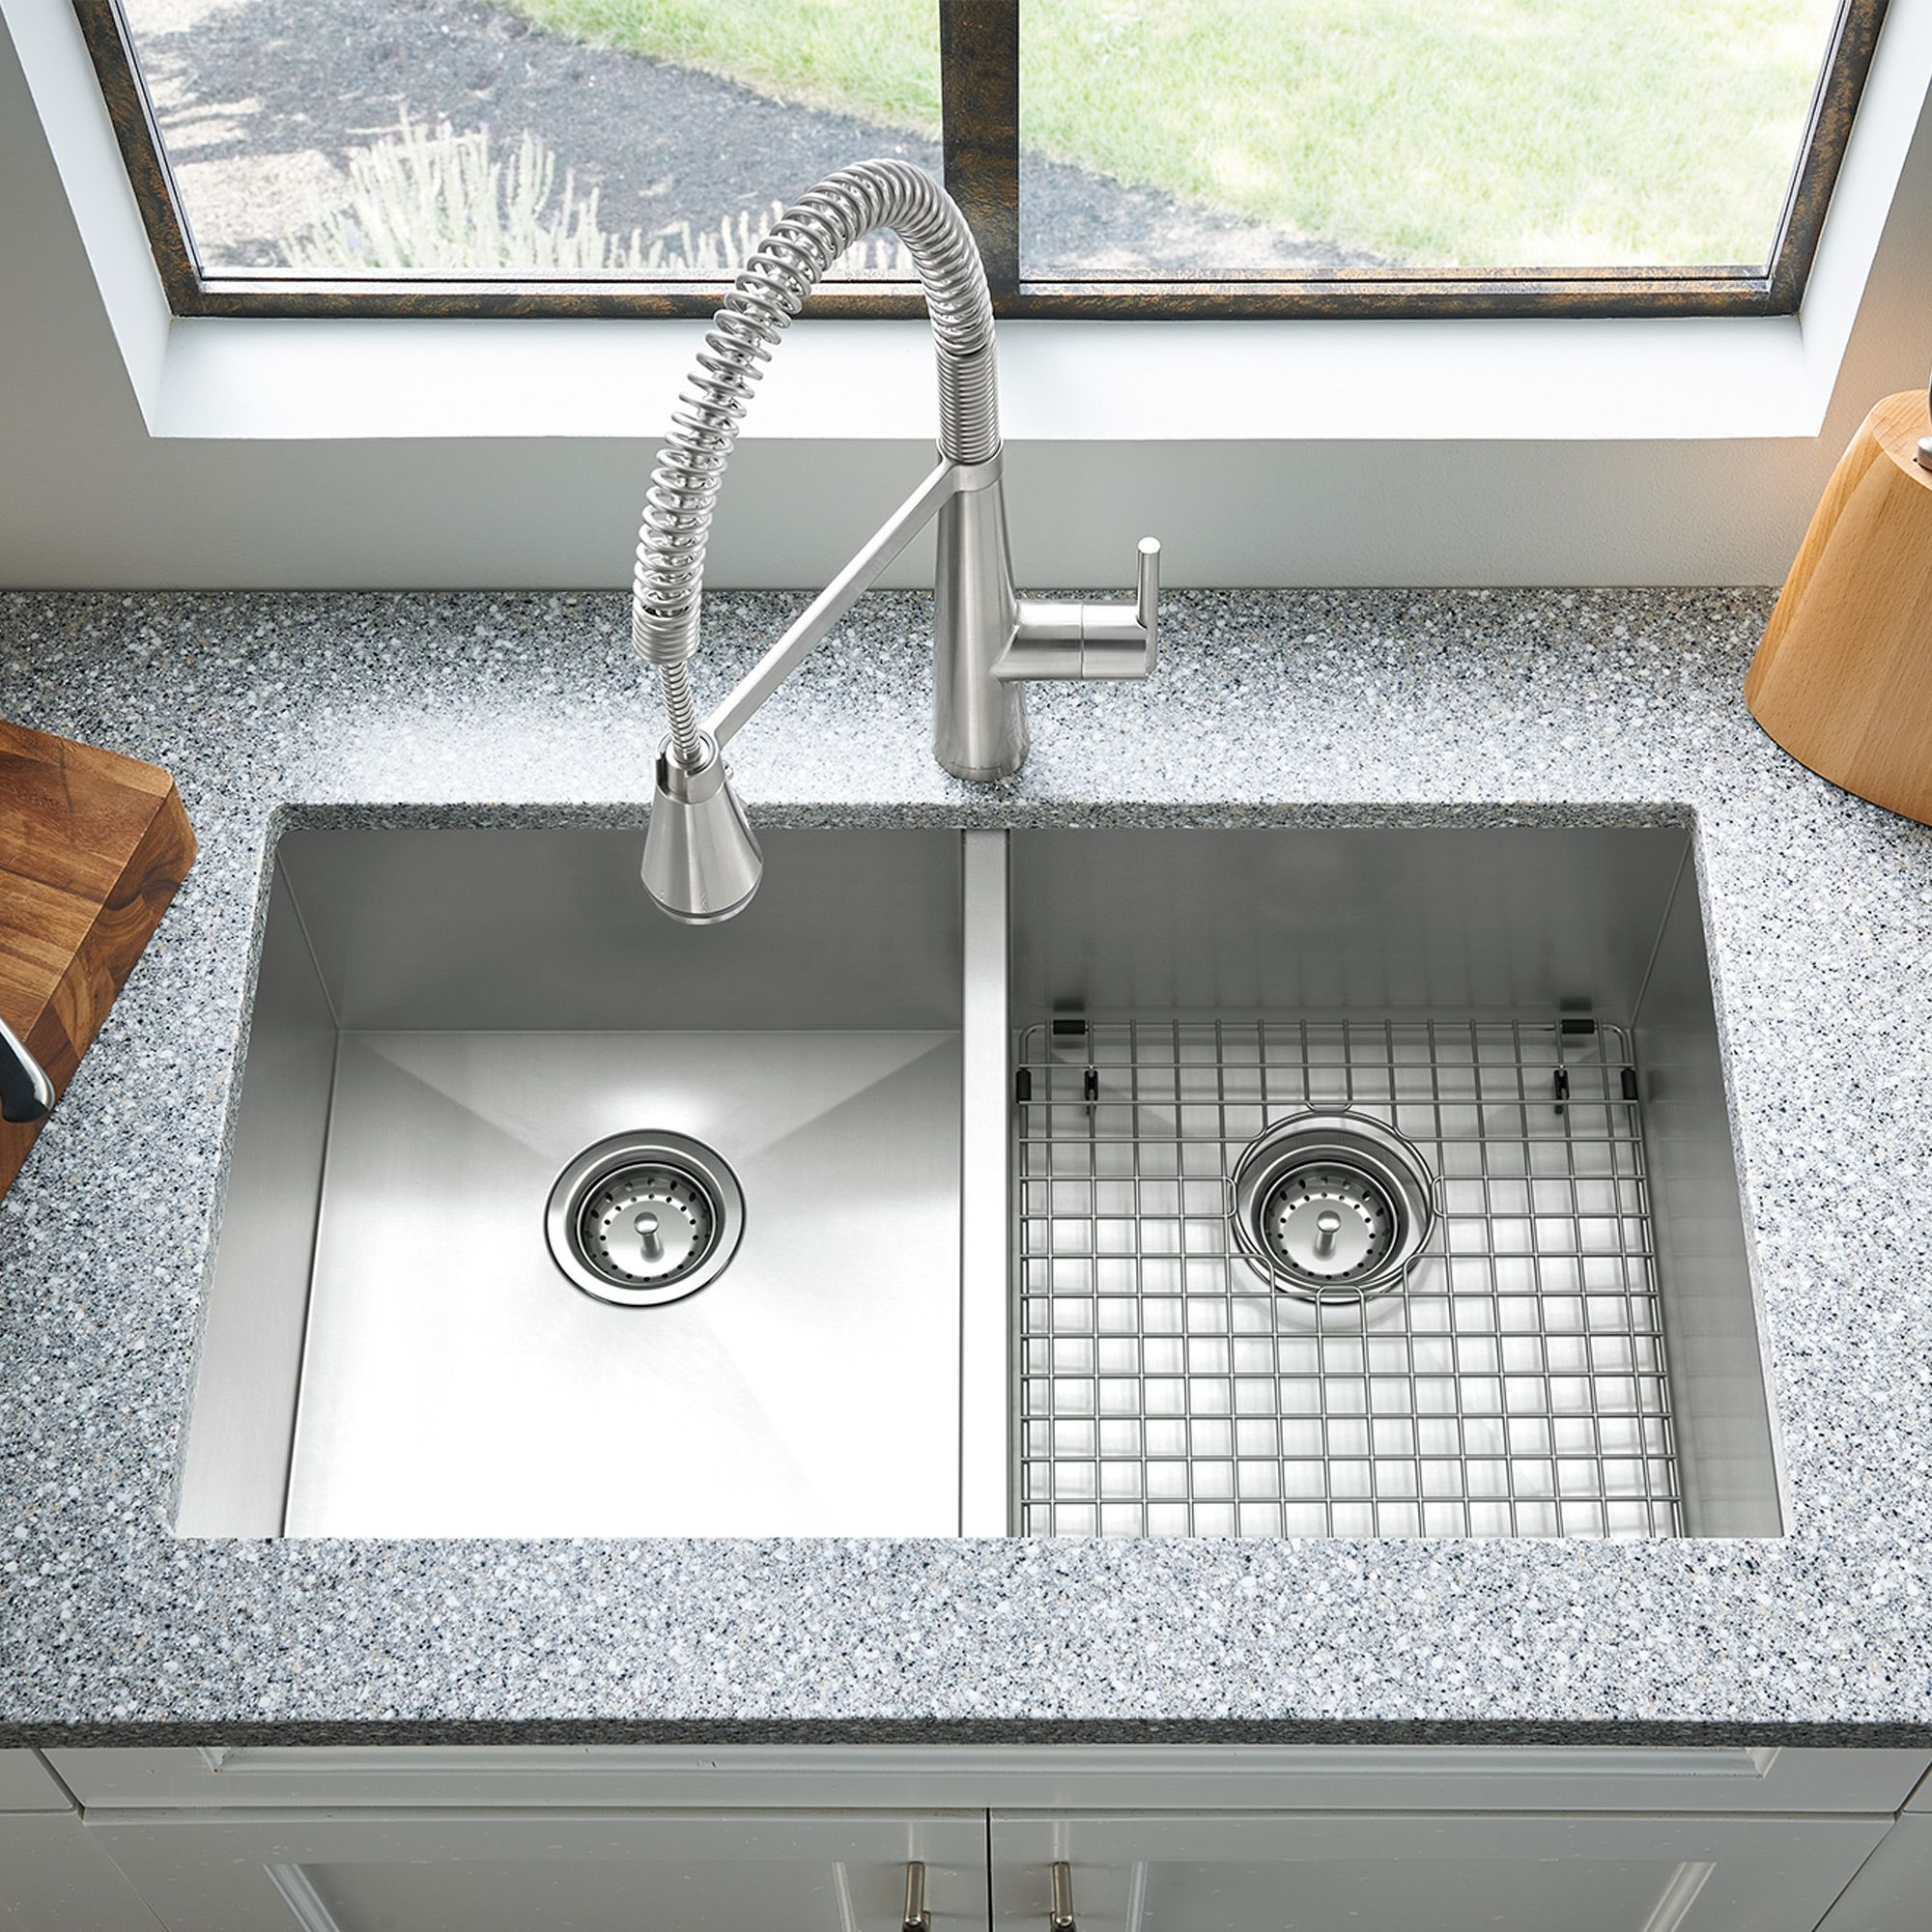 Stainless Steel Kitchen Sinks For Durable Renovation Double